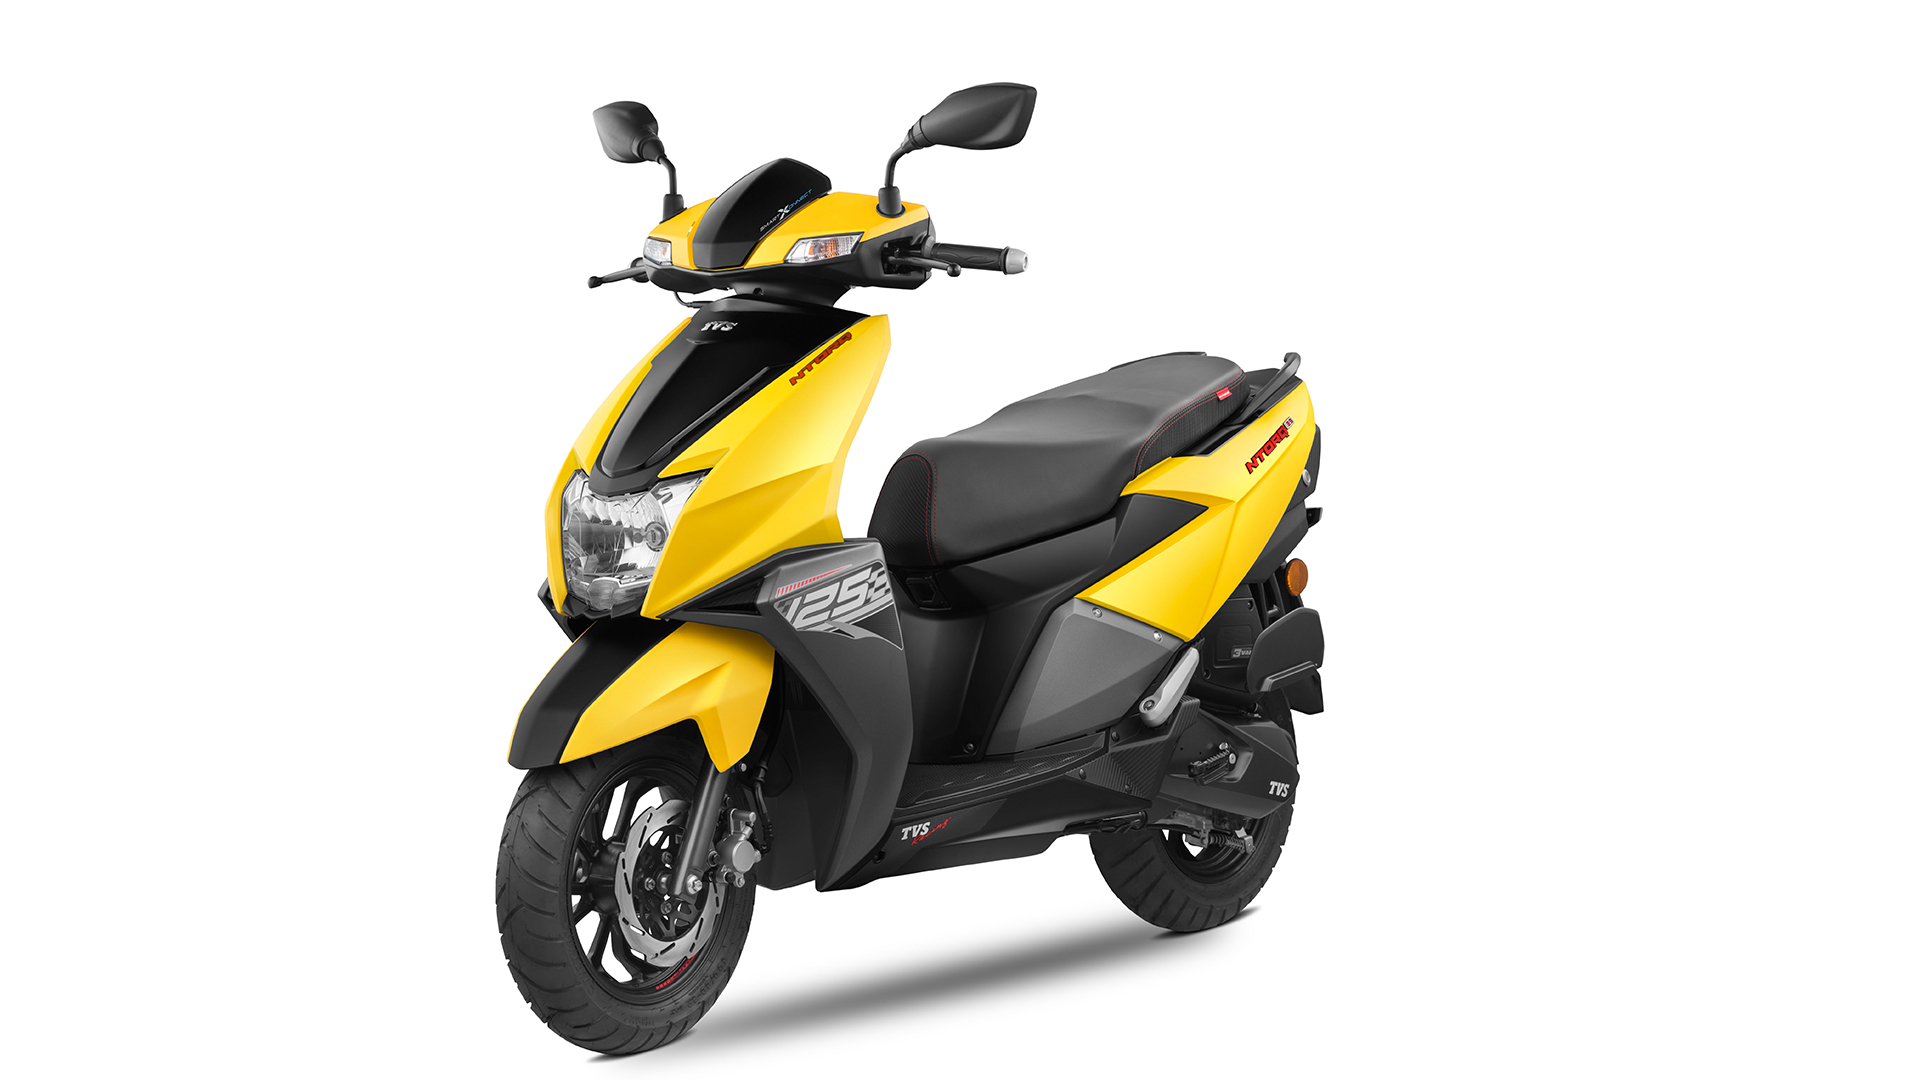 Tvs Ntorq 125 2018 Price Mileage Reviews Specification Gallery